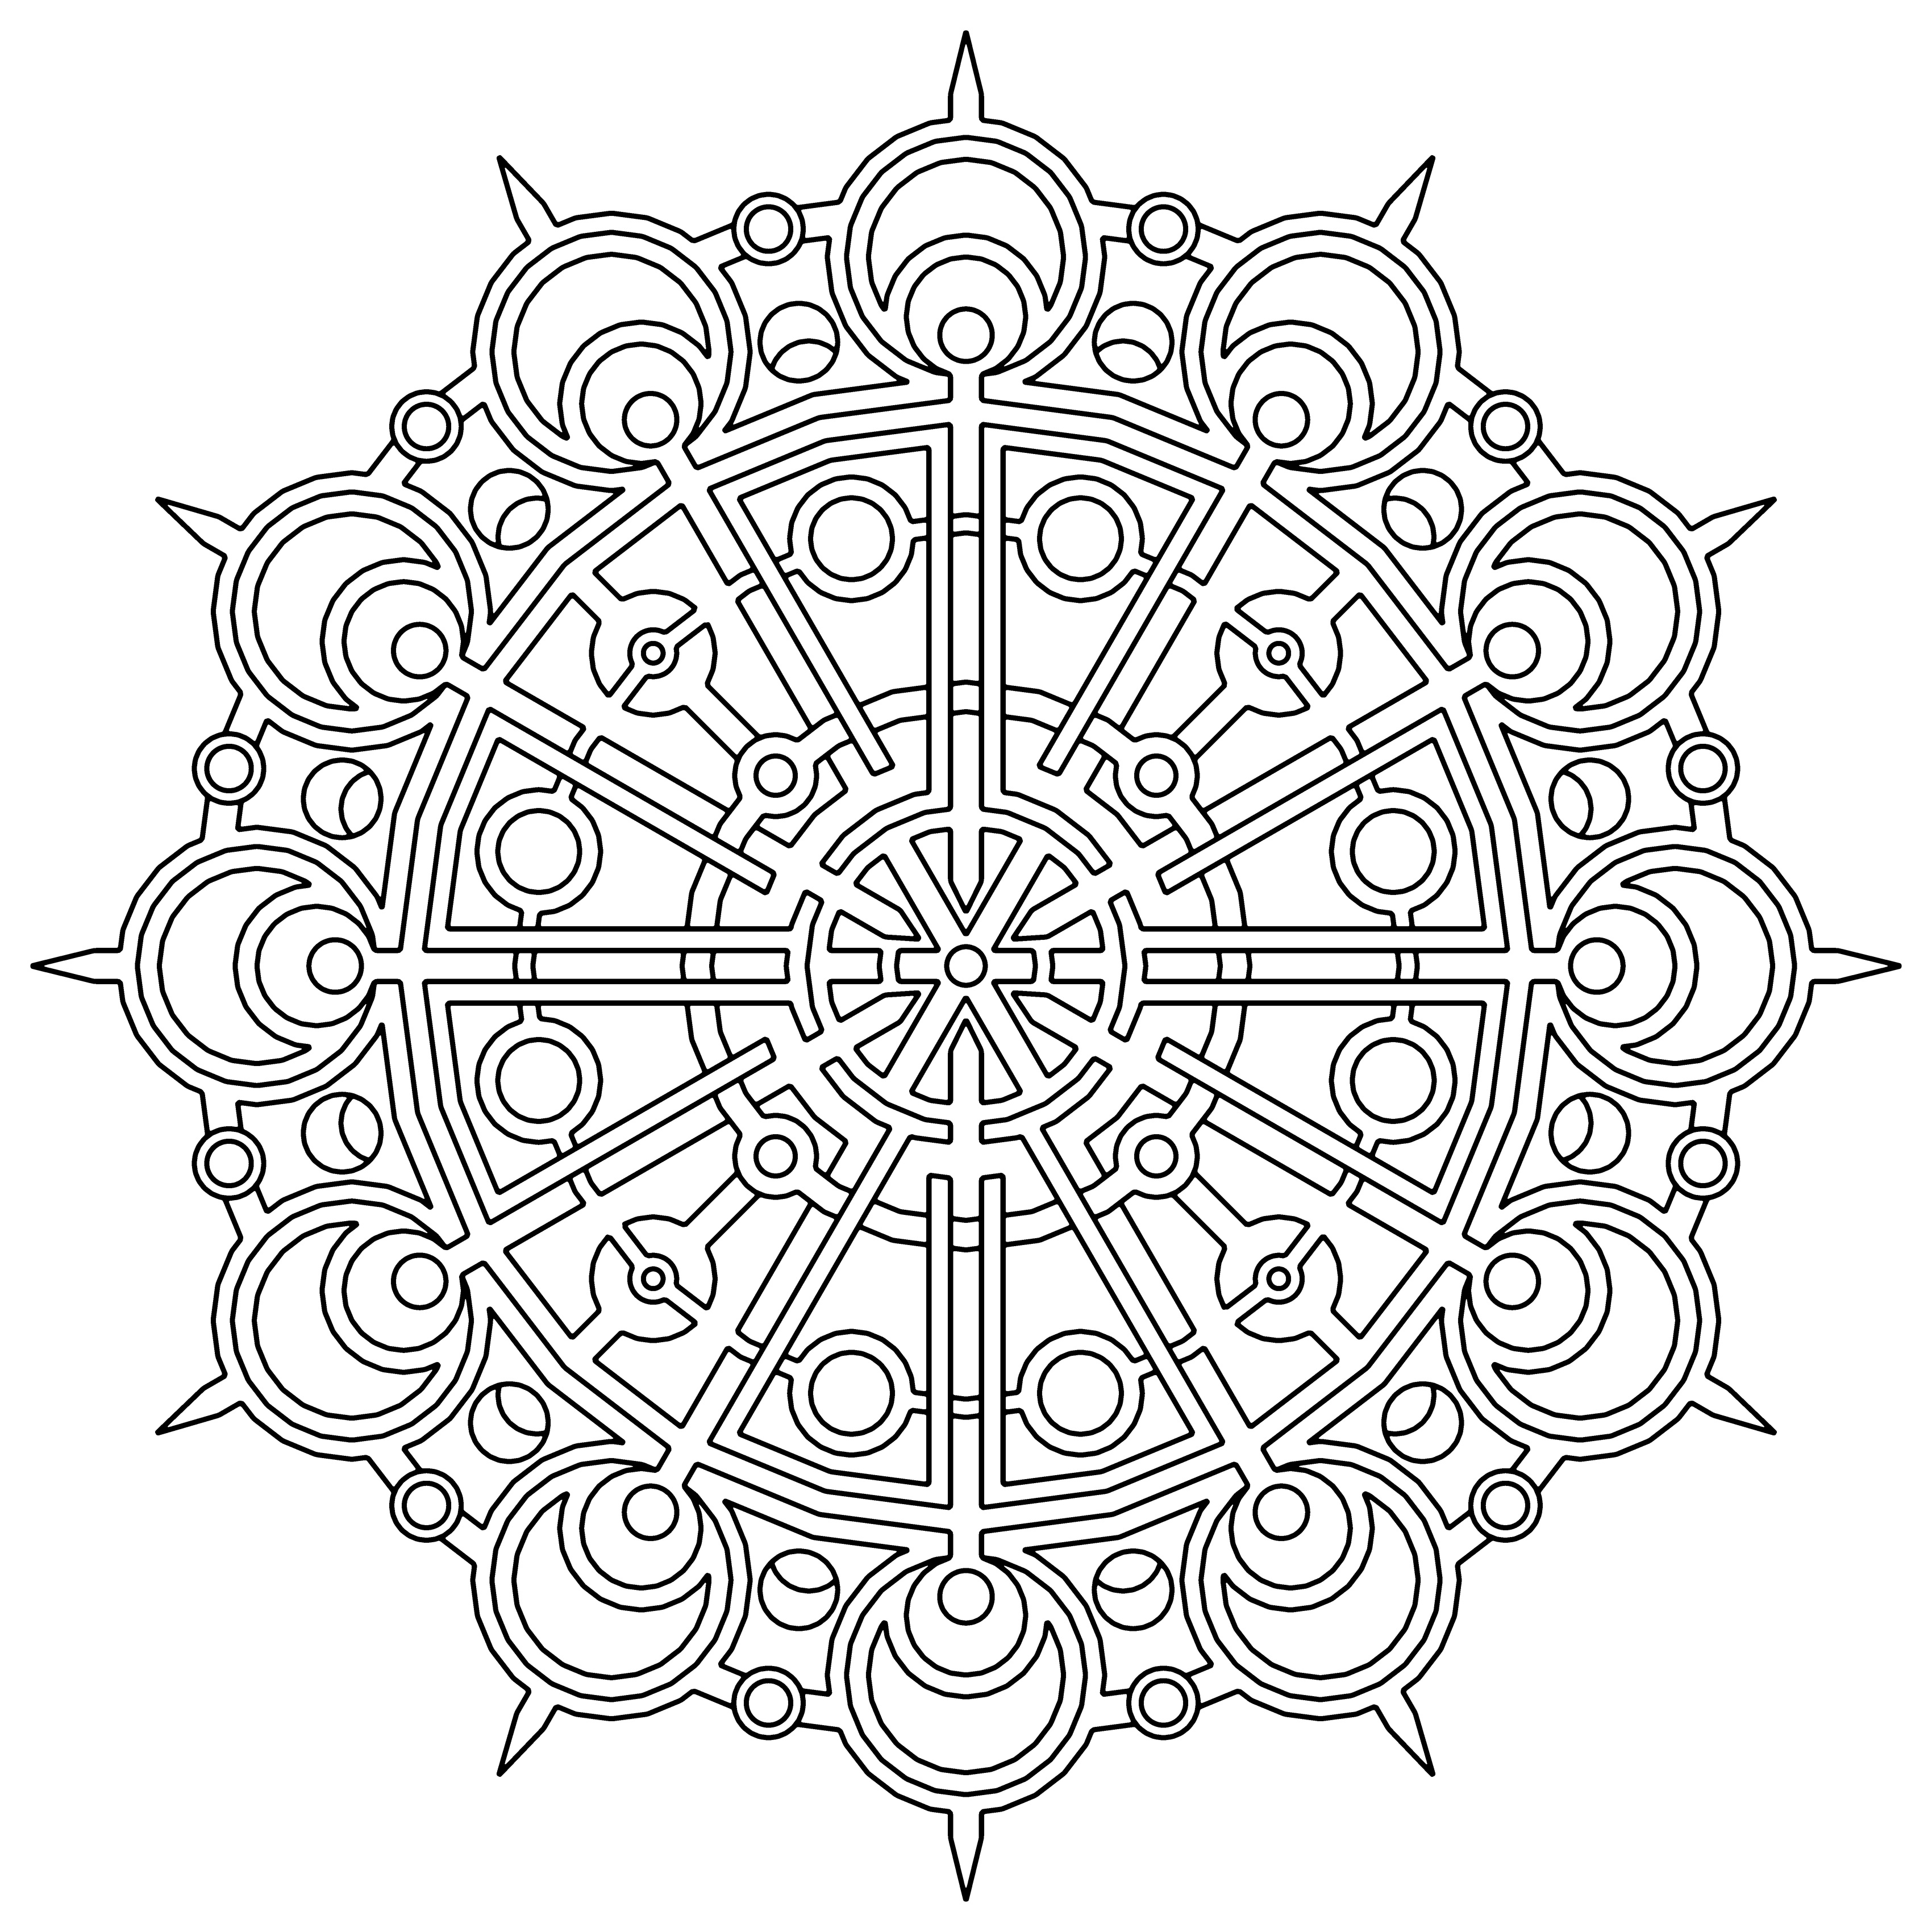 design coloring pictures nostalgic designs for adults who color live your life in design coloring pictures